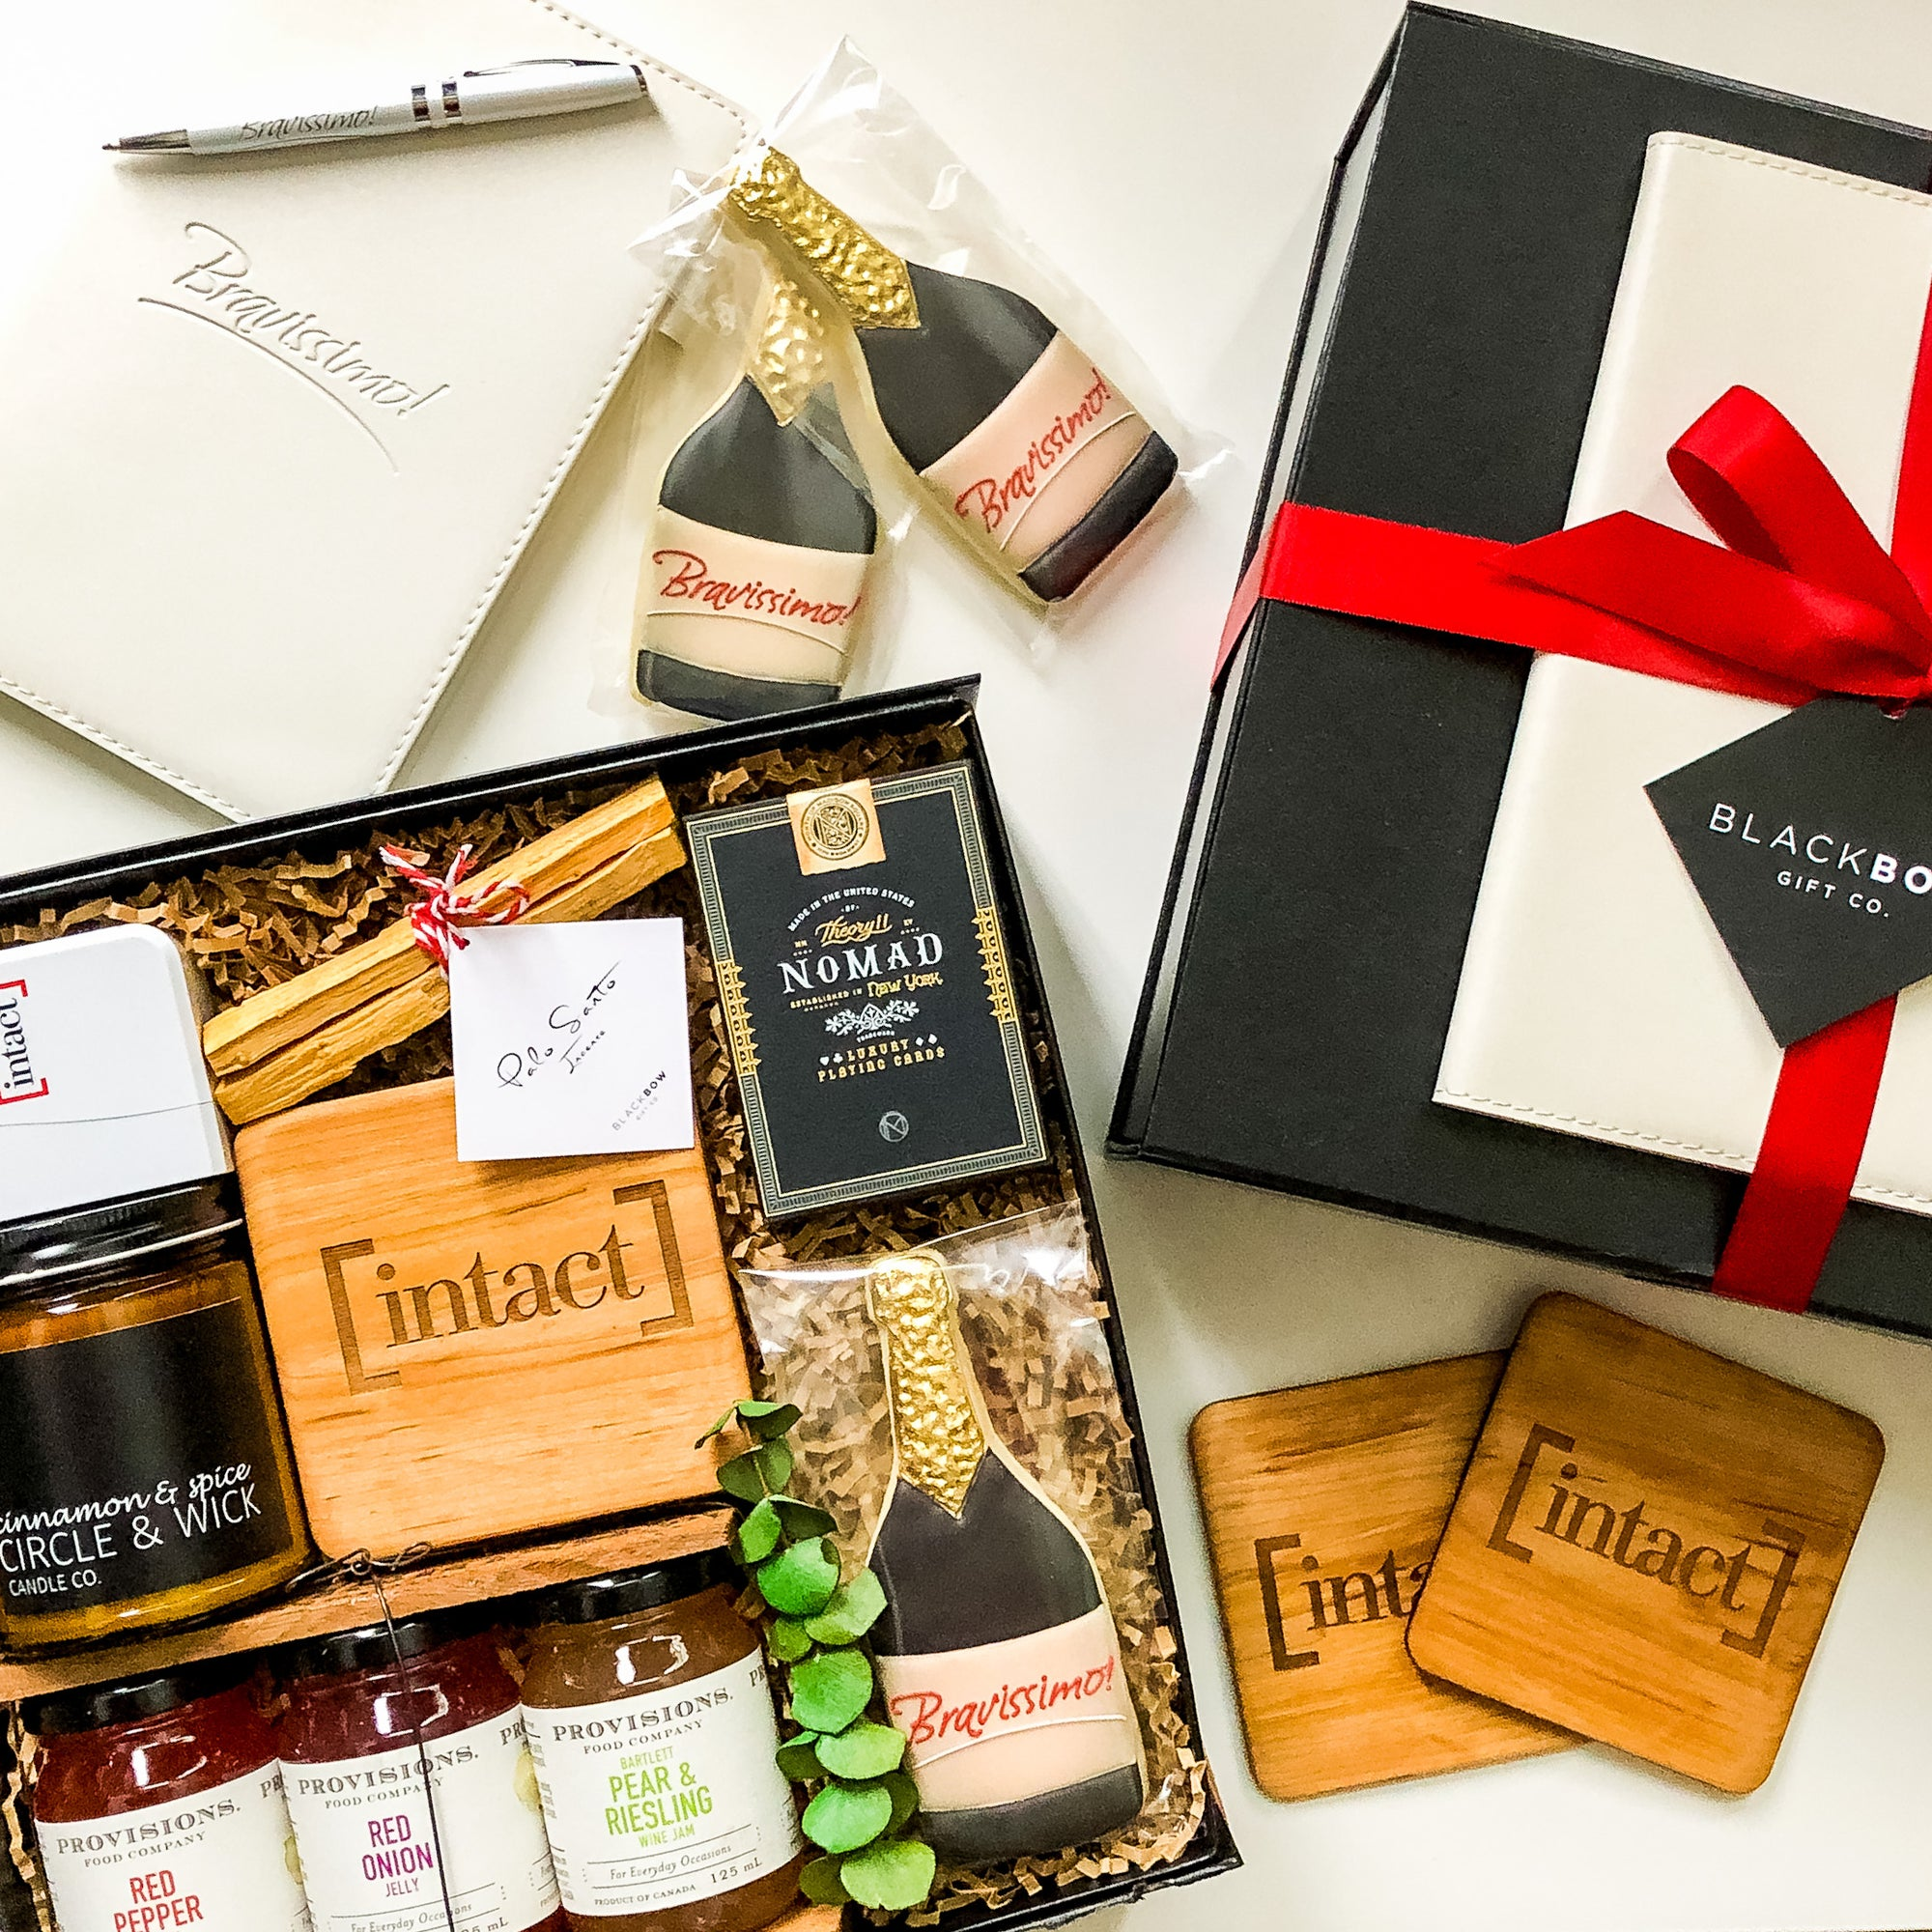 Custom Corporate Gifts, Corporate Gifts, Branded Gifts, Client Appreciation Gifts, Halifax Corporate Gifts, Client Appreciation Gifts, Client Gift Baskets, Custom Branded Gifts, Custom Gift Boxes, Custom Gift Baskets, Virtual Meeting Gifts